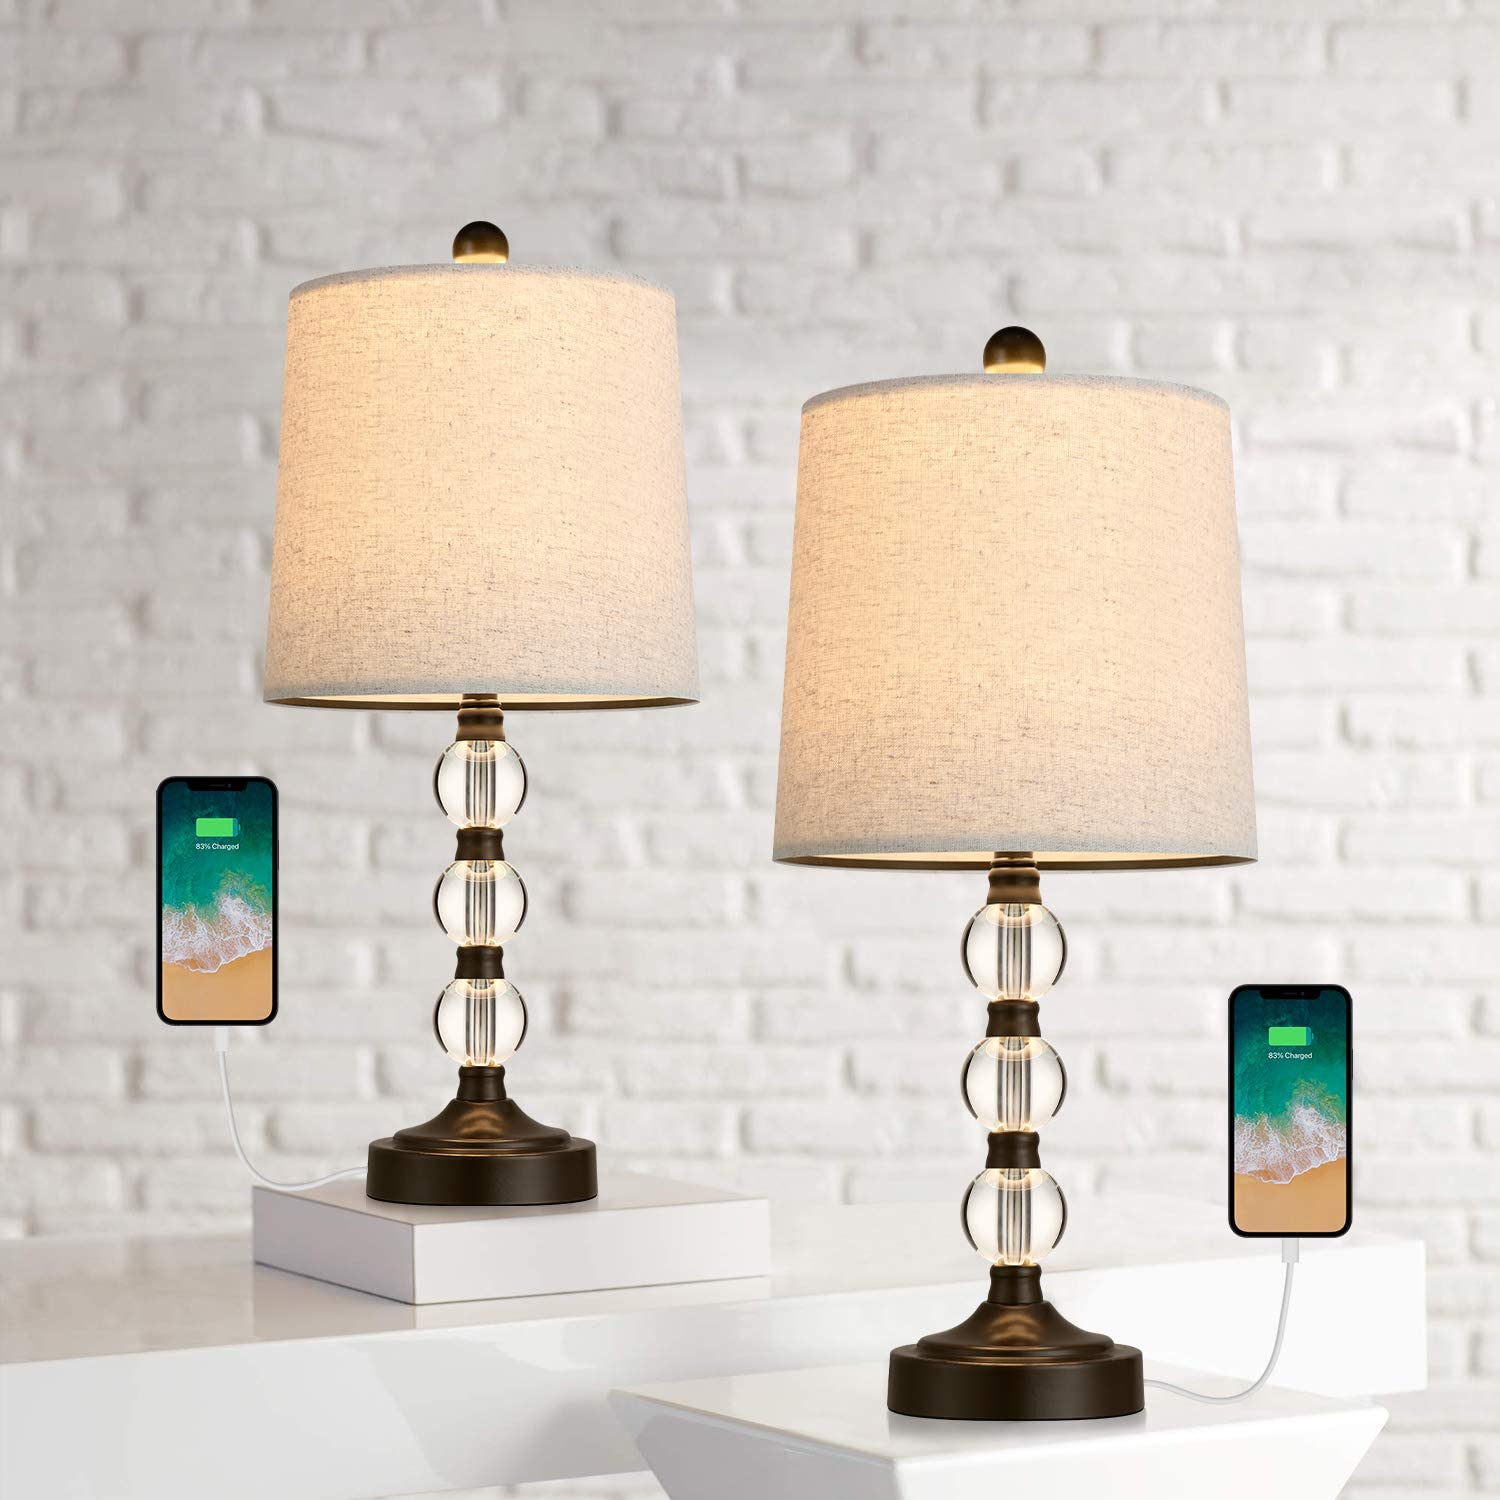 Oneach Modern USB New mail order Table Lamps Set of Room for S 2 Bedroom quality assurance Living